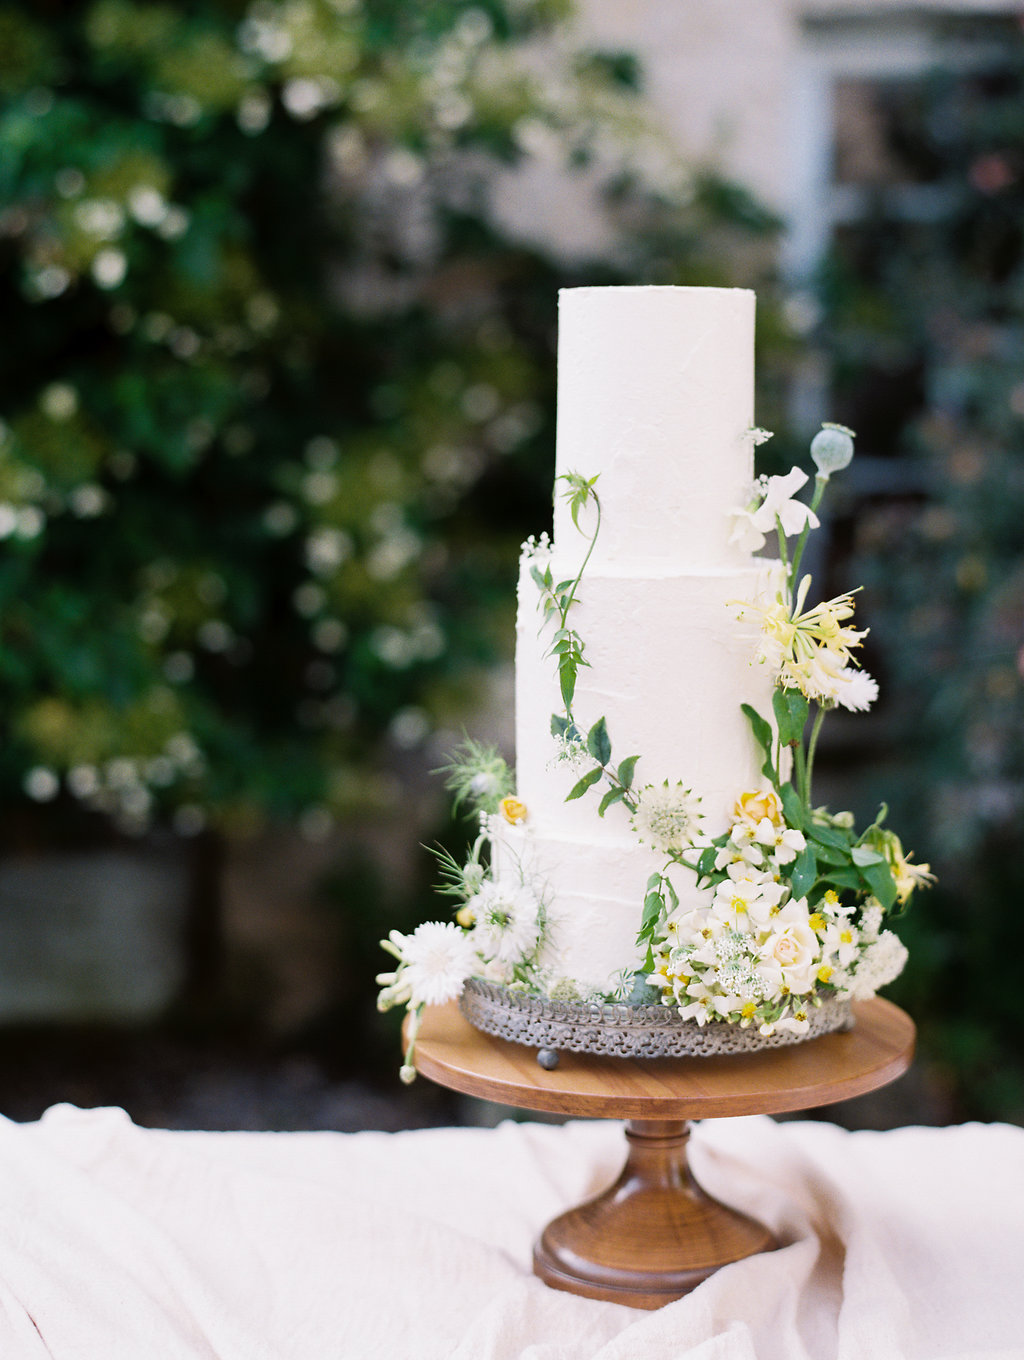 wedding cakes with organic details - photo by As Ever Photography http://ruffledblog.com/the-secret-garden-inspired-wedding-in-ireland